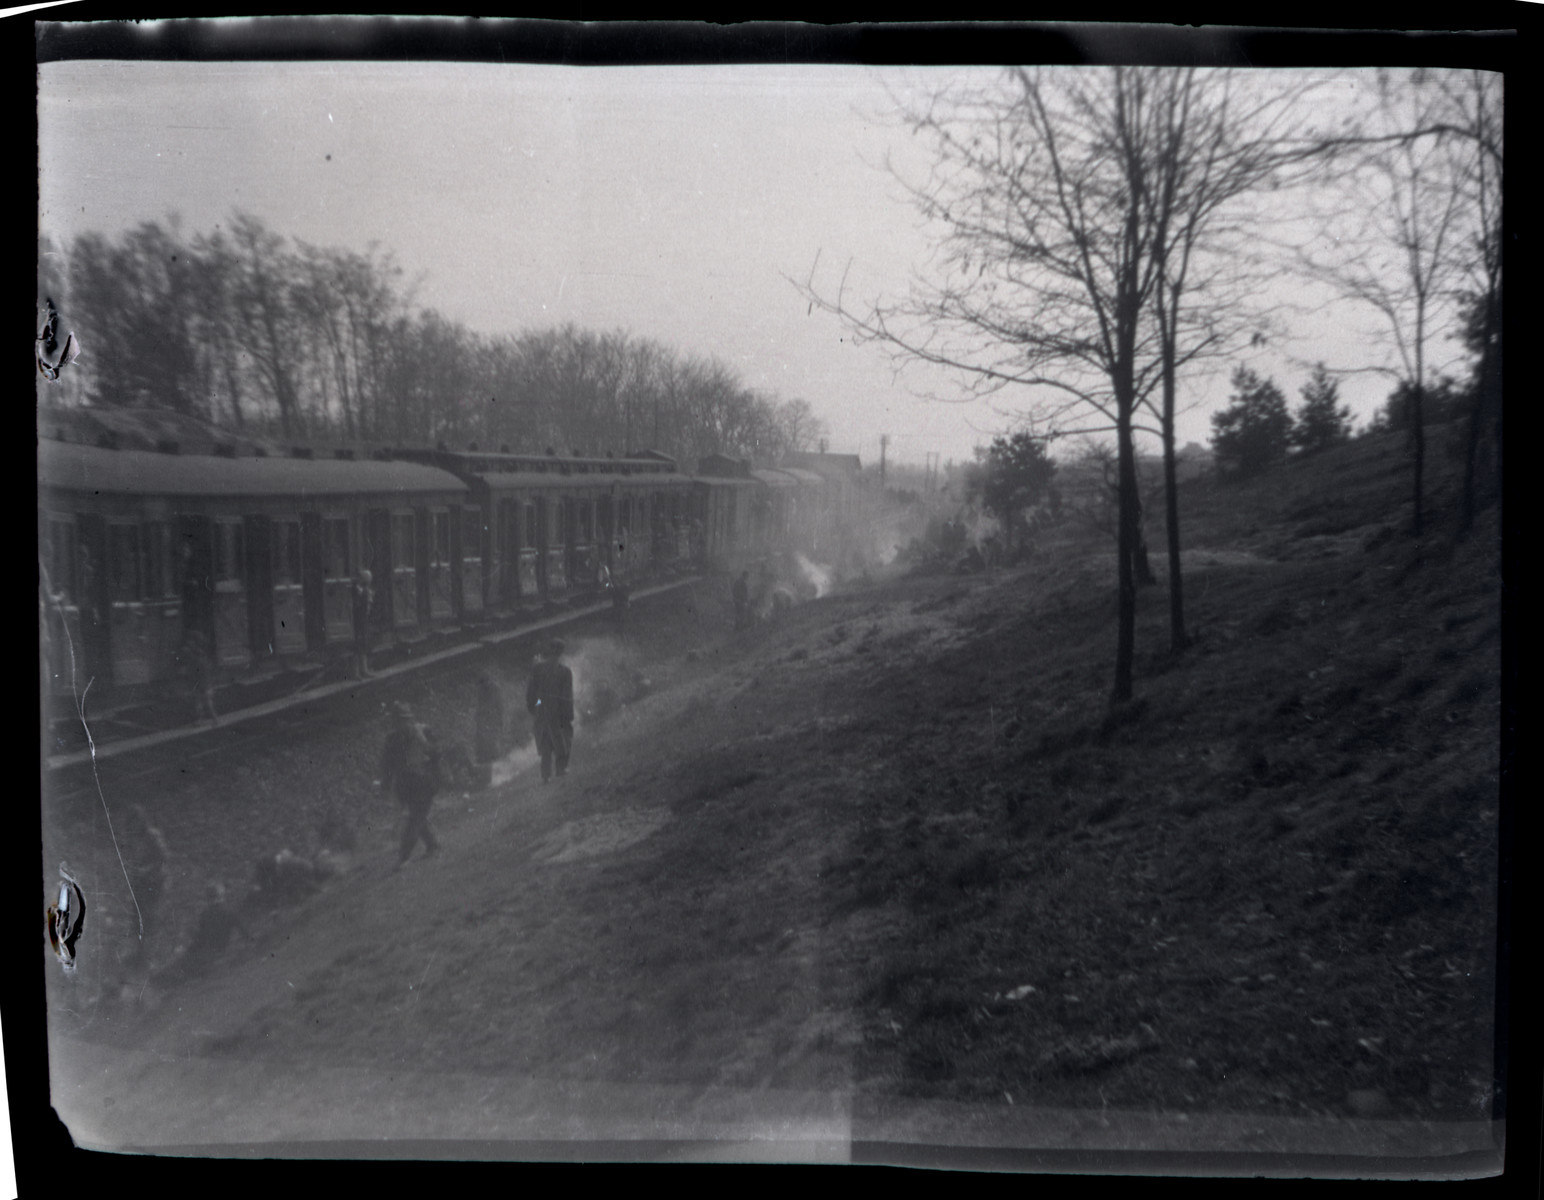 View of the evacuation train headed from Bergen-Belsen to Theresienstadt and liberated by the Americans near Farsleben.